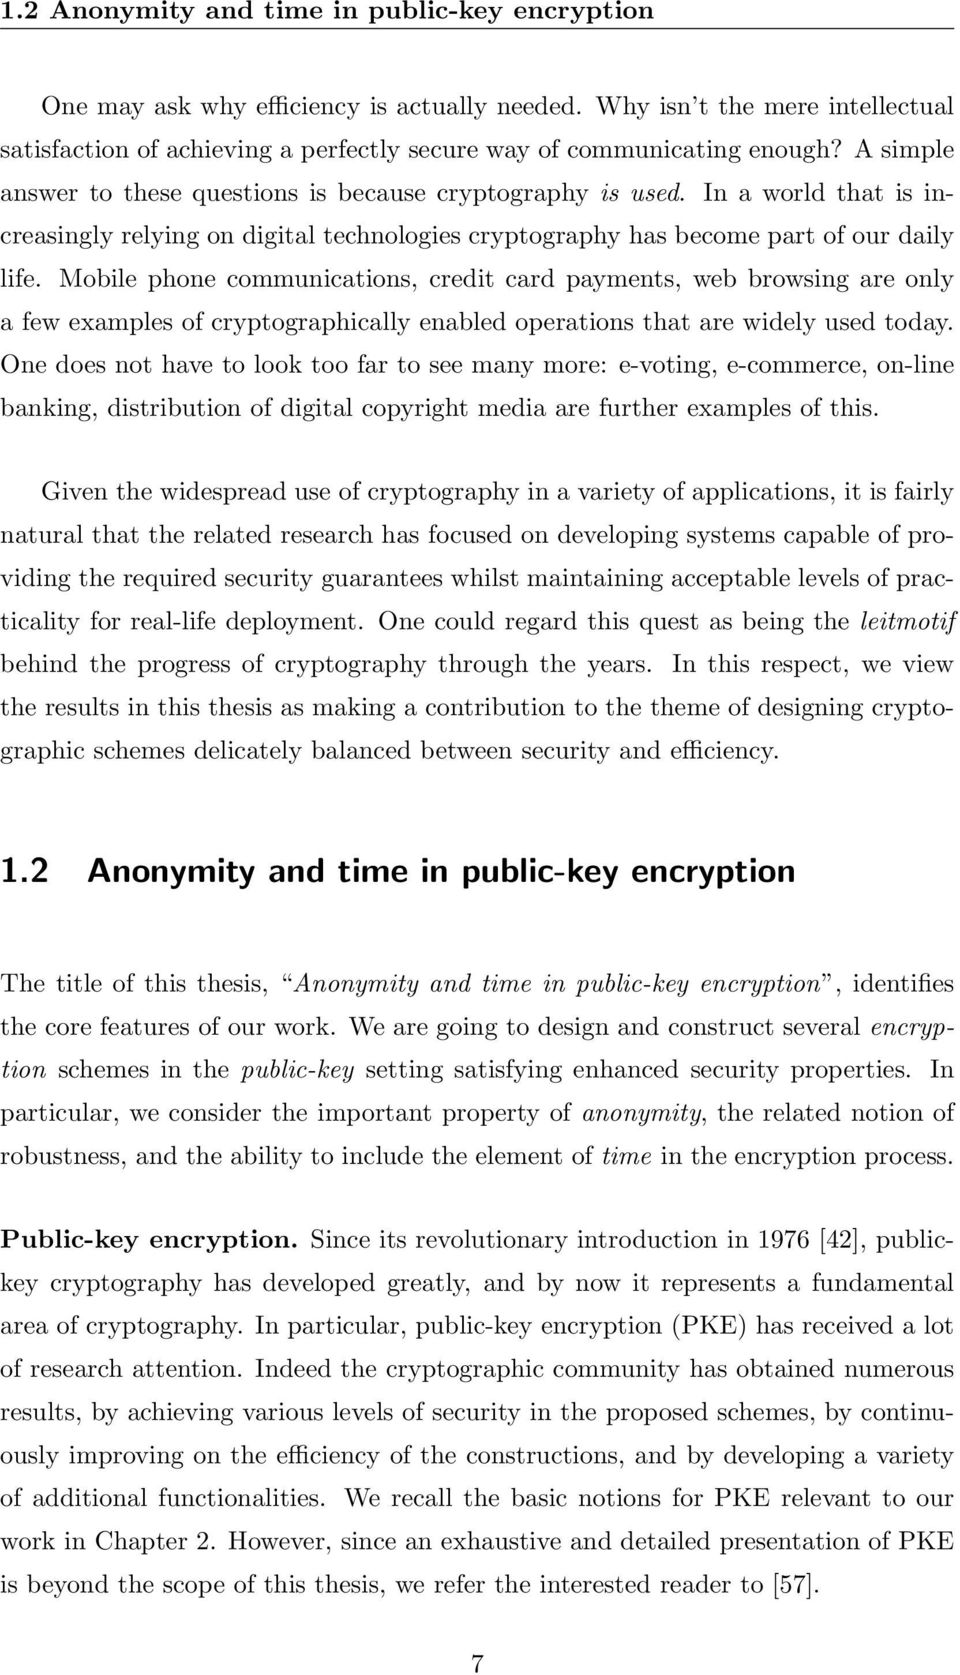 Mobile phone communications, credit card payments, web browsing are only a few examples of cryptographically enabled operations that are widely used today.